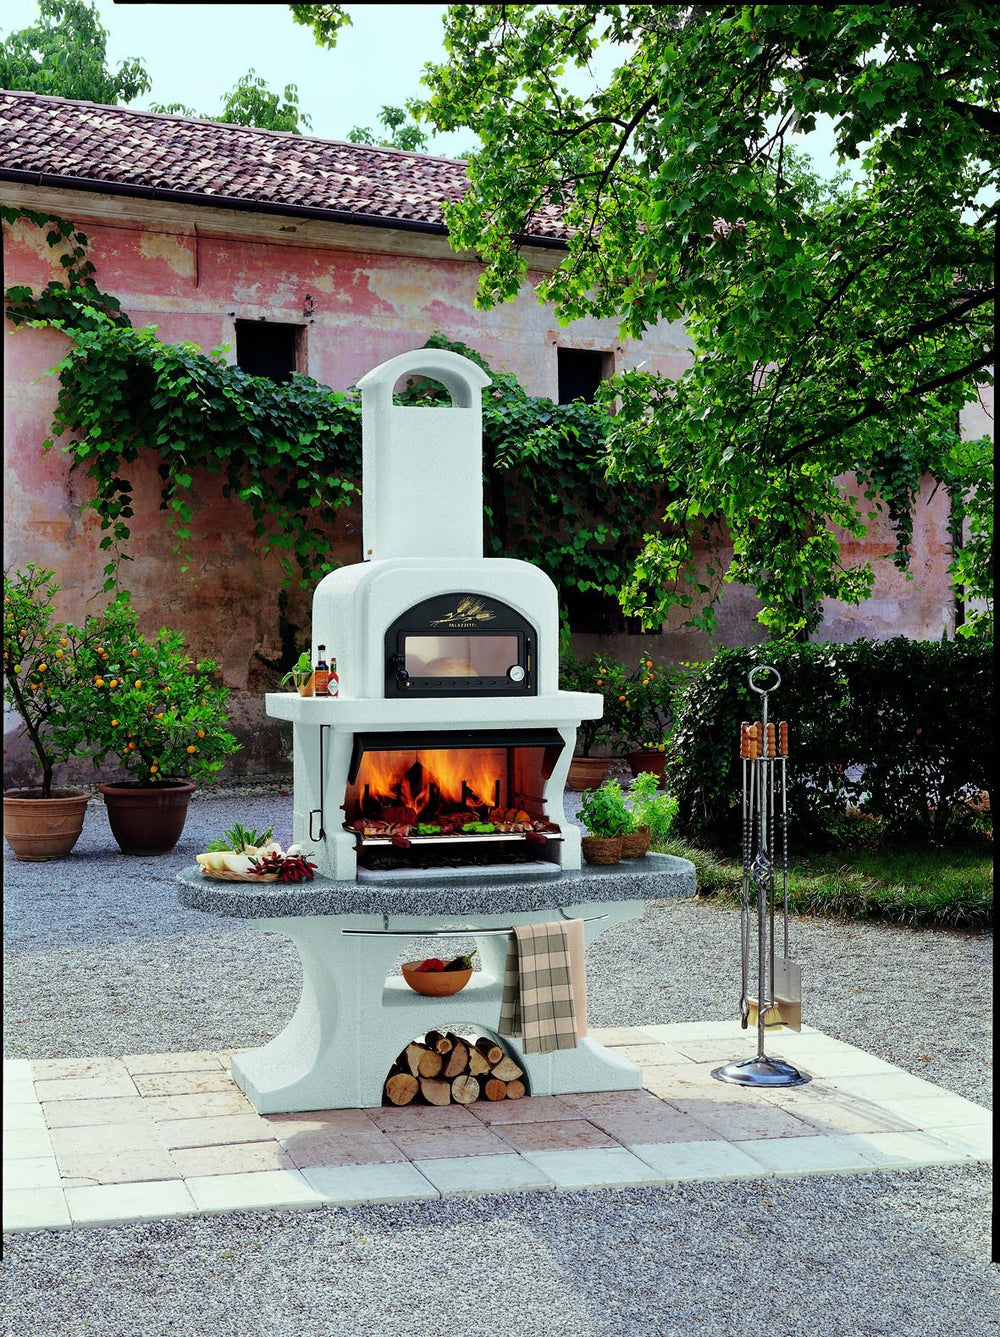 Palazzetti CAPRI 2 Barbecue Outdoor Cooking Grill By Paini Pizza Ovens Paini